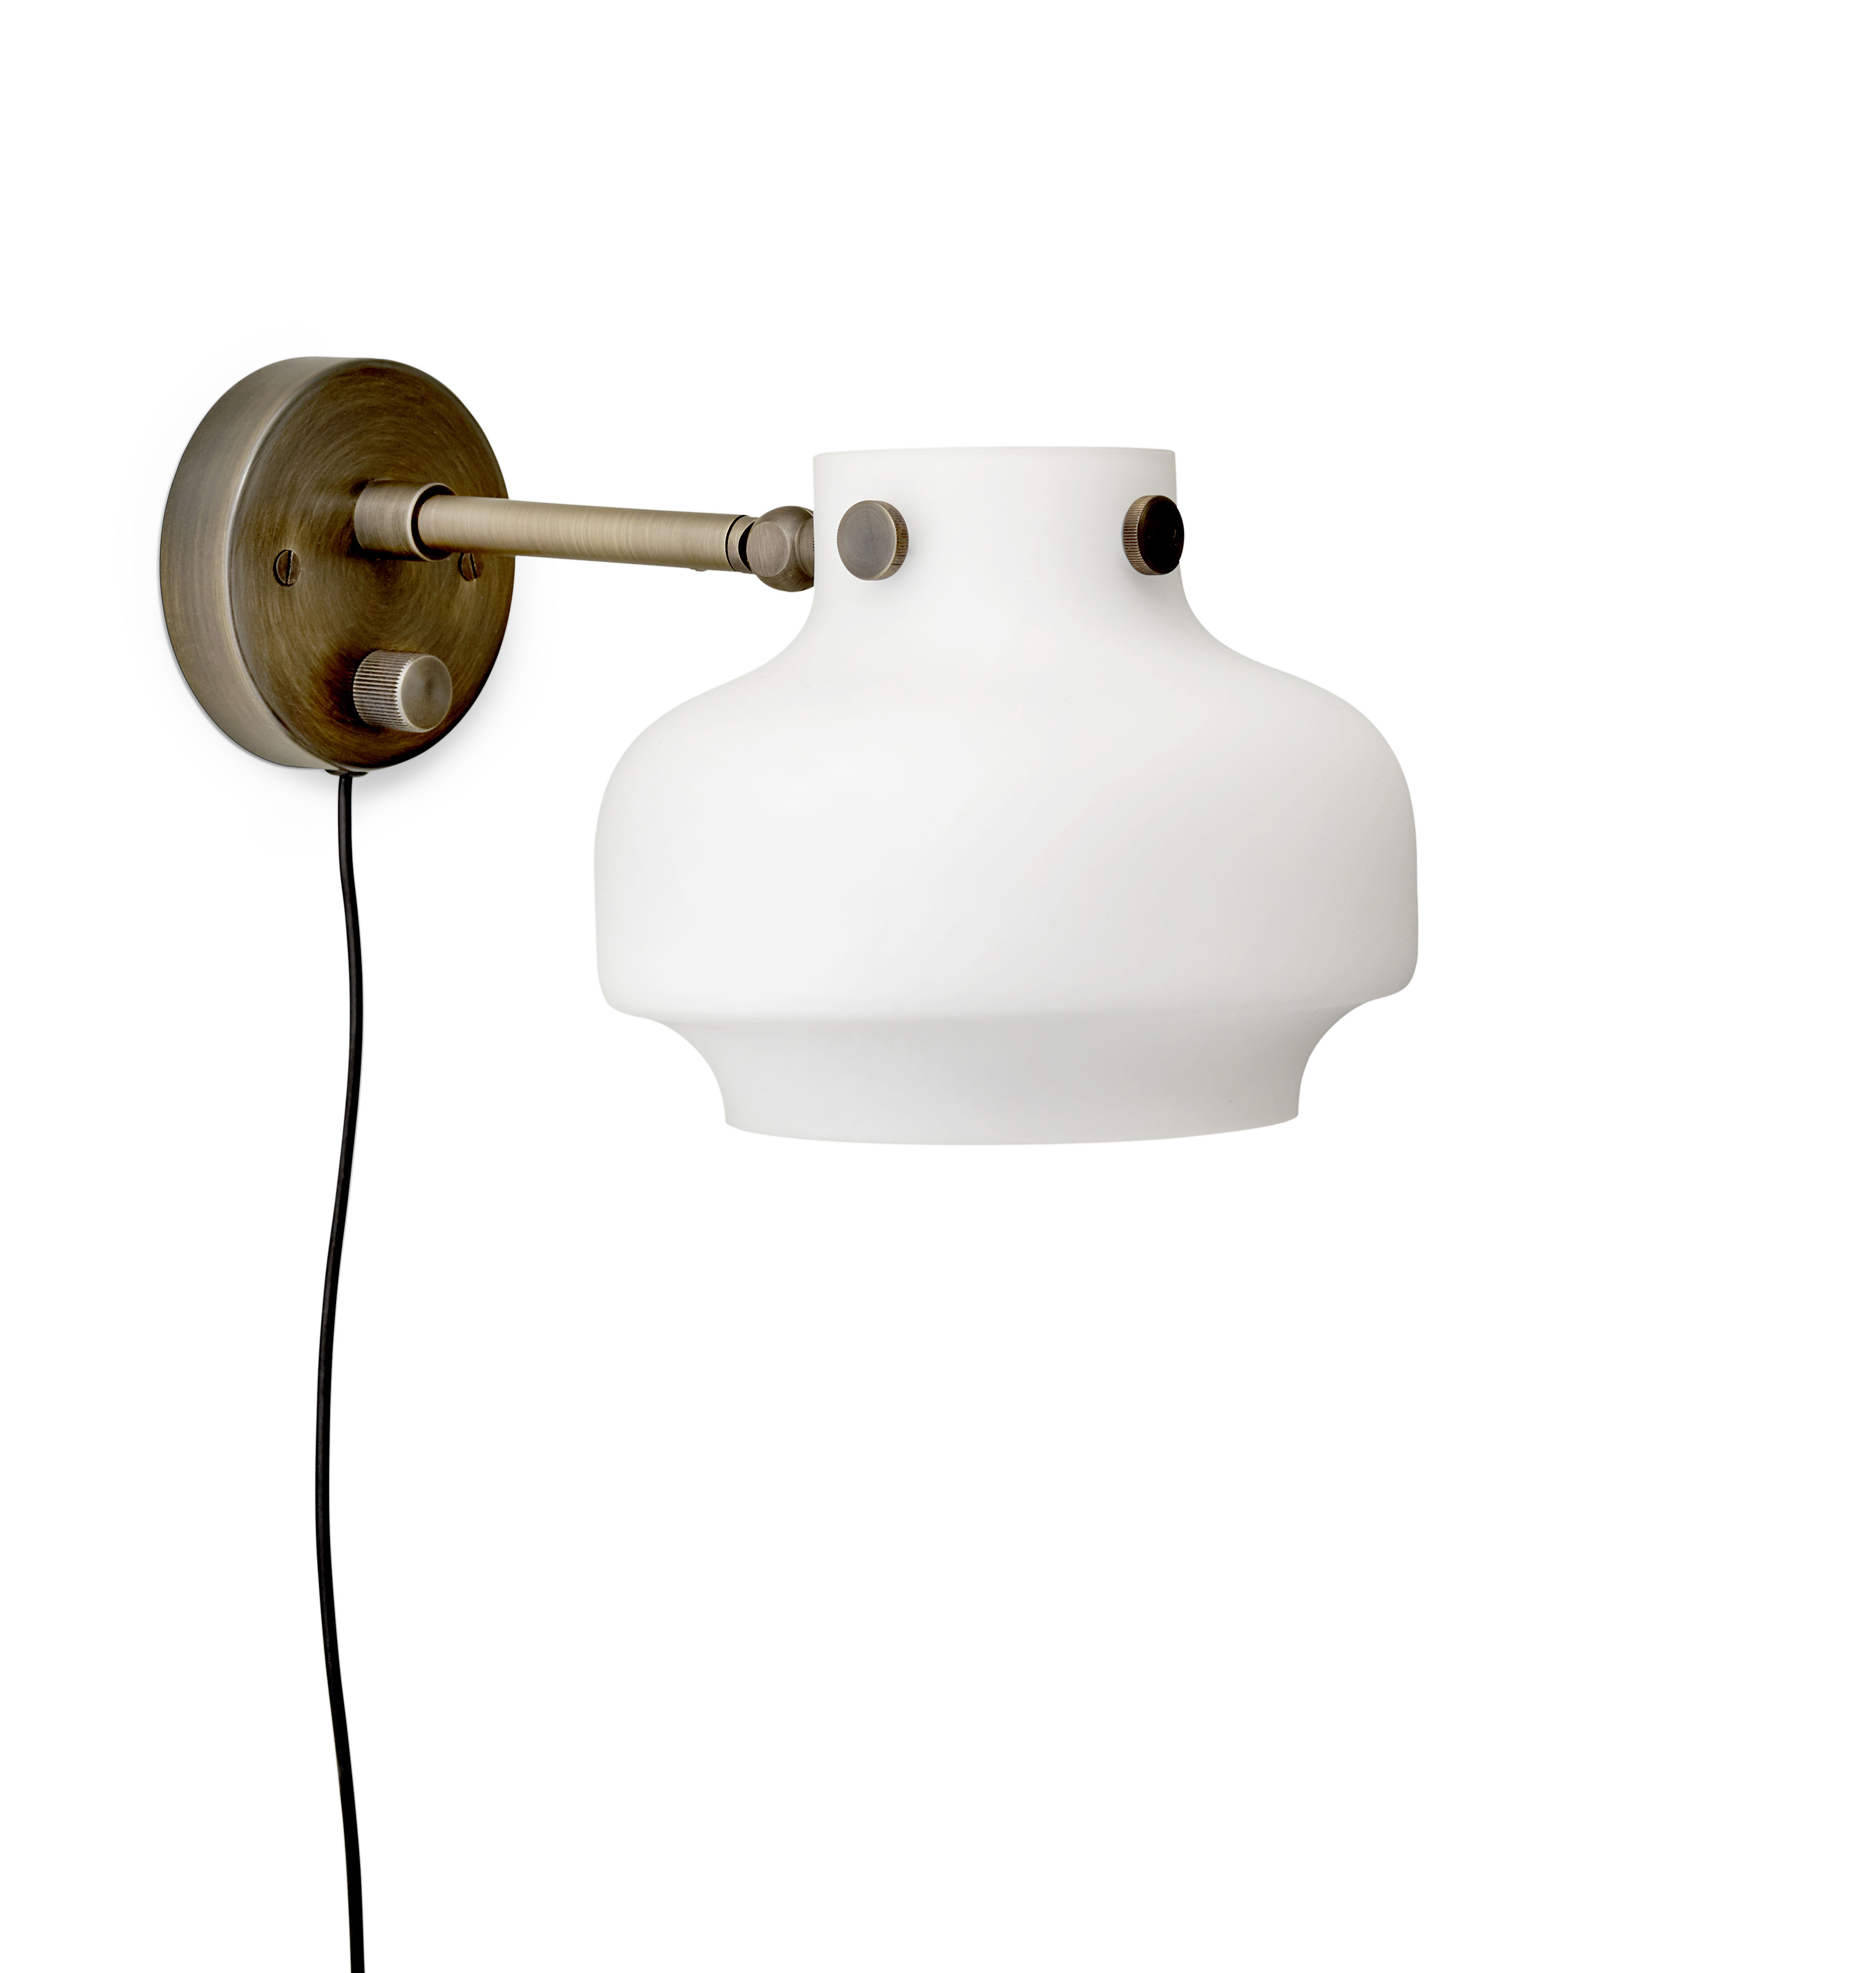 Lighting - Wall Lights - Copenhague SC16 Wall light with plug - / LED - ø 16 cm - Glass by &tradition - White / Bronze - Brass, Mouth blown glass